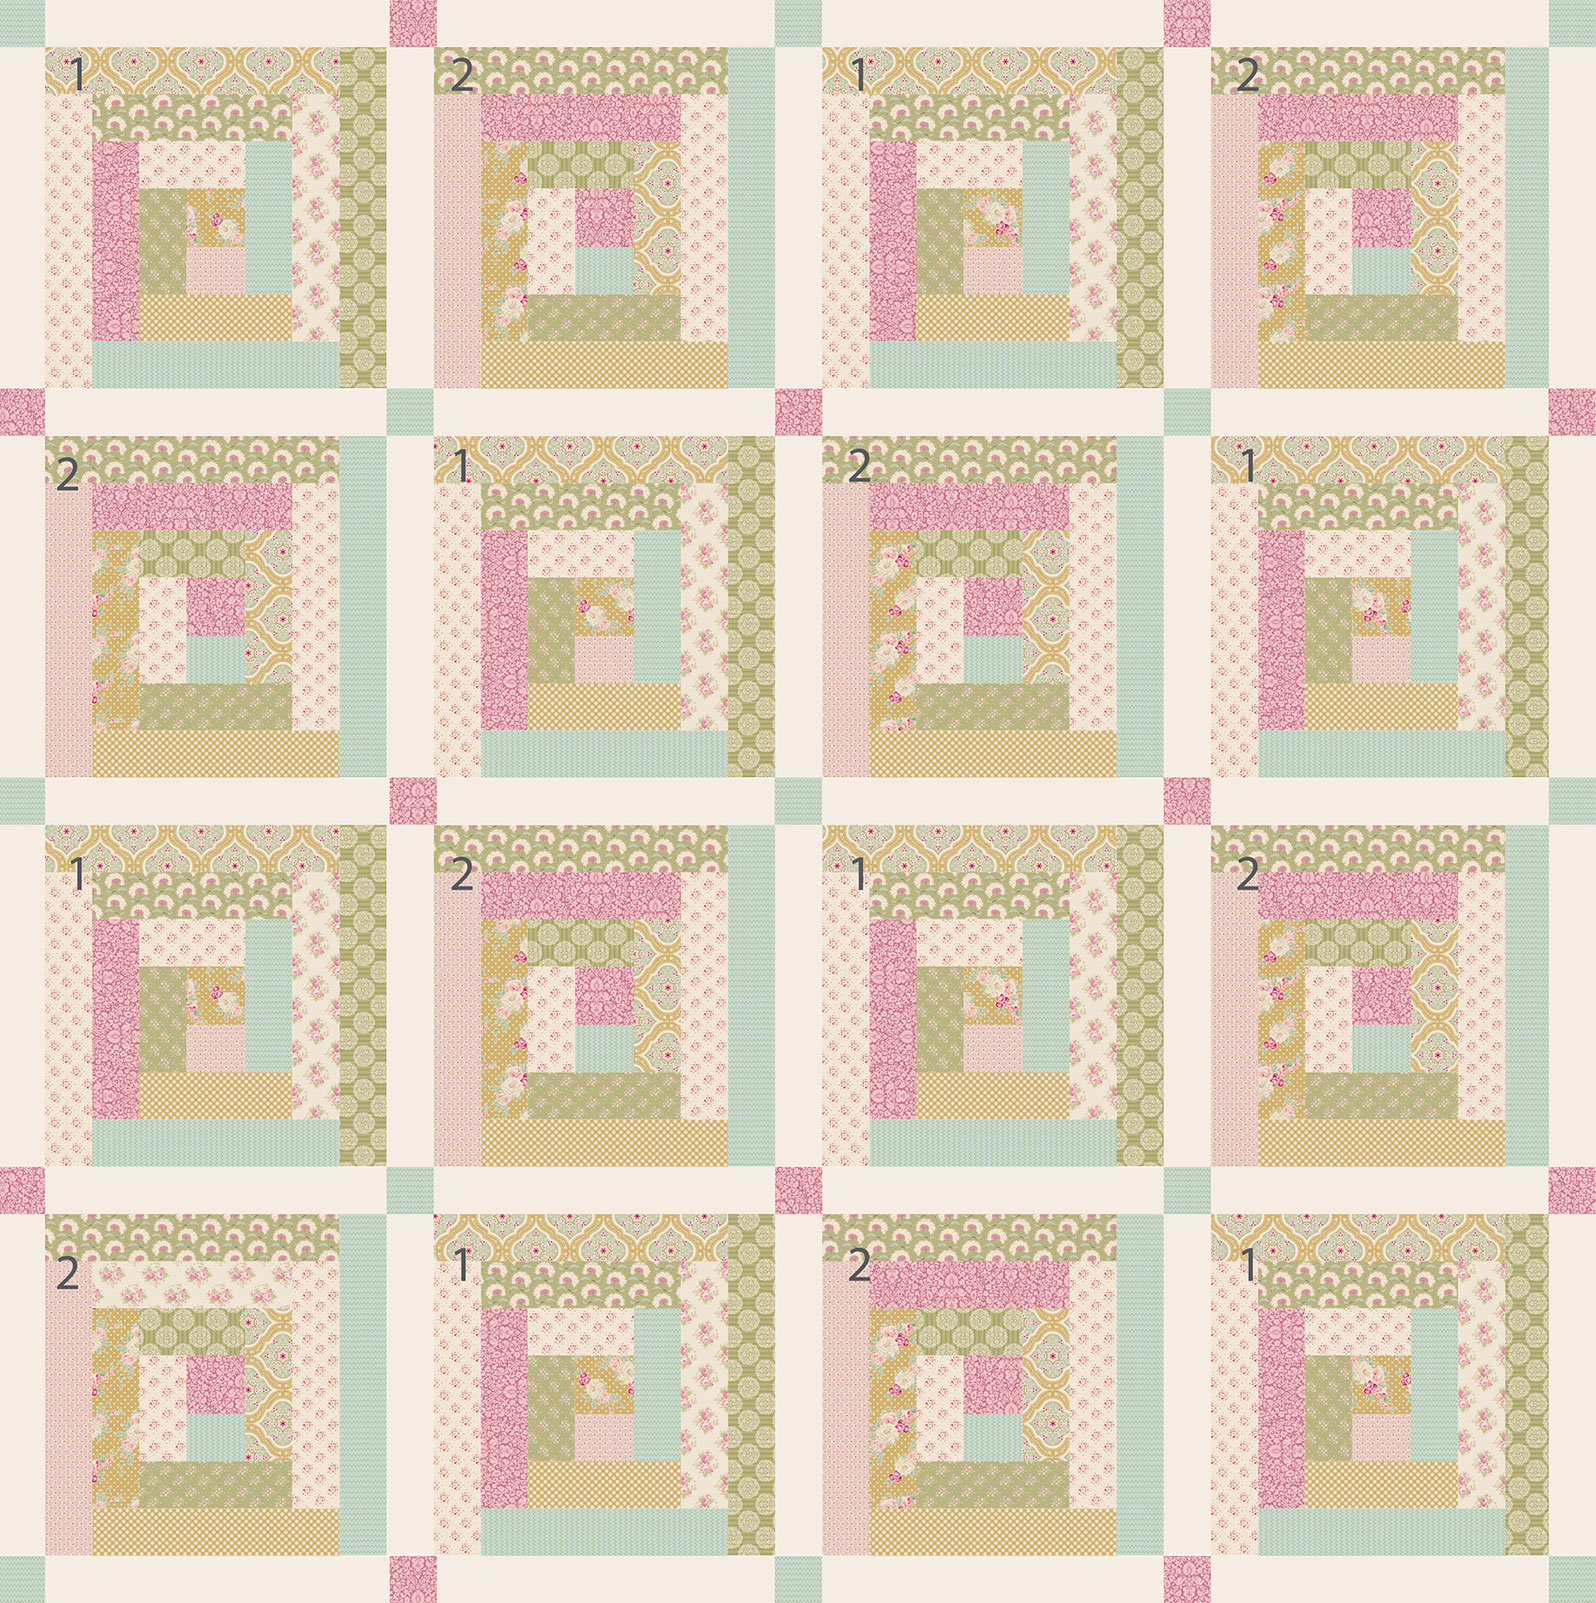 Apple-Bloom-quilt-6-